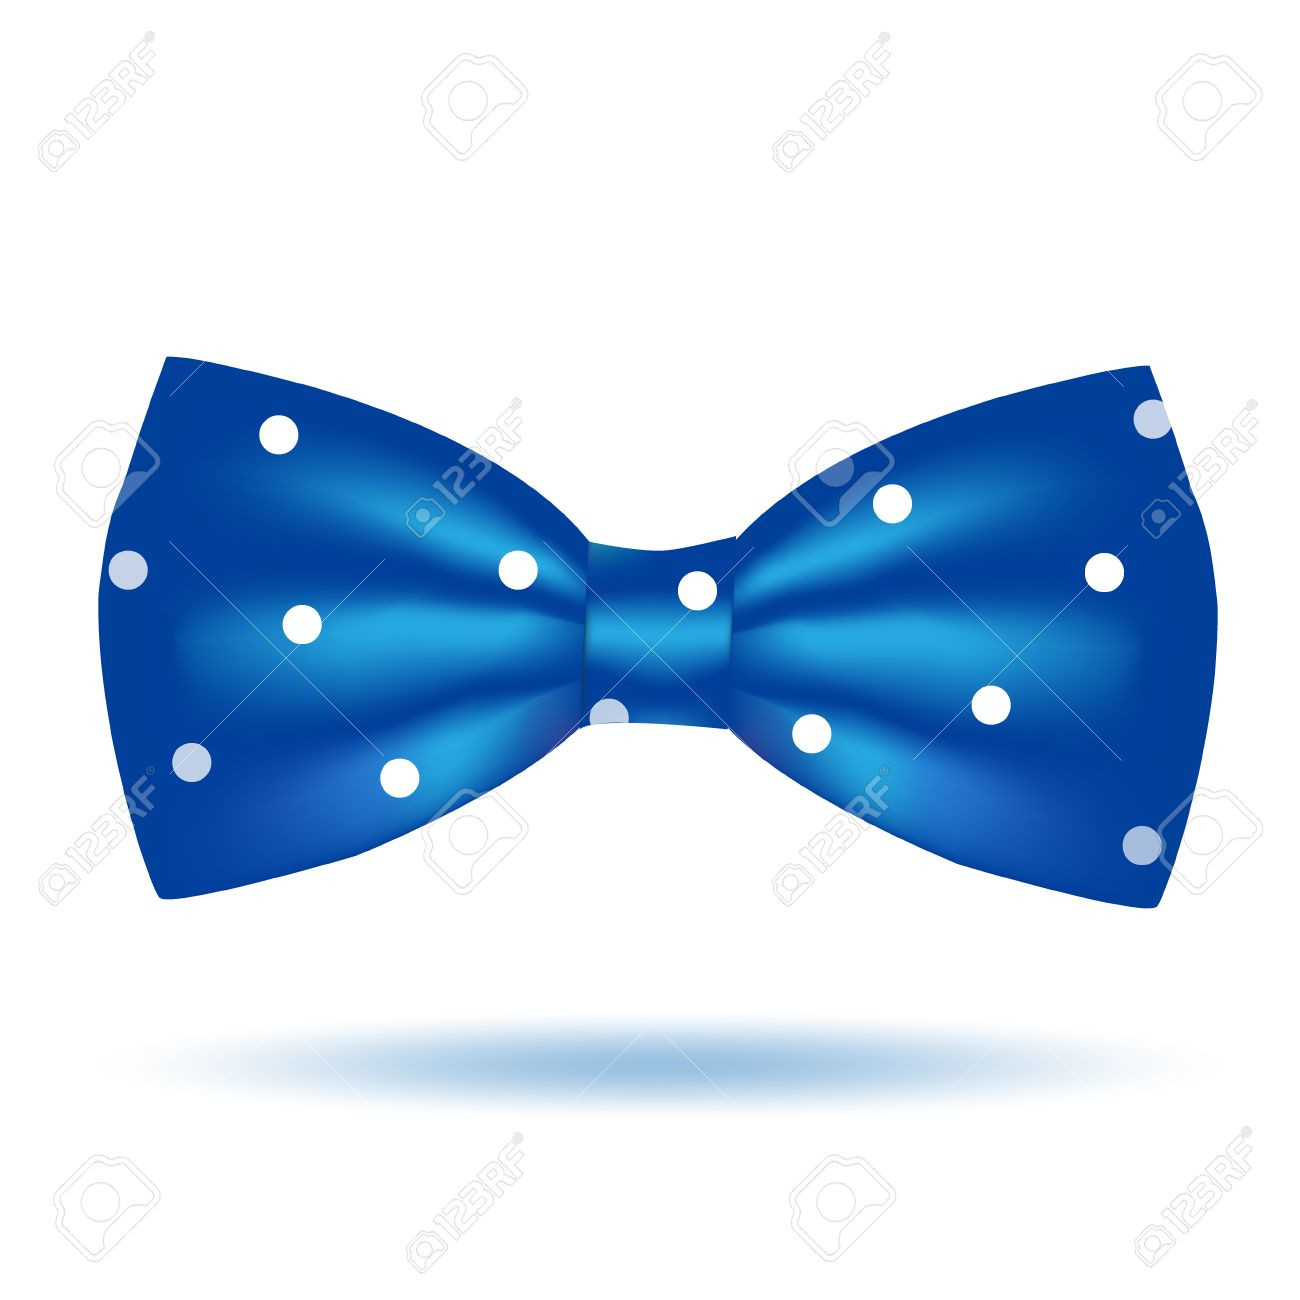 Bow Tie Clipart at GetDrawings.com.